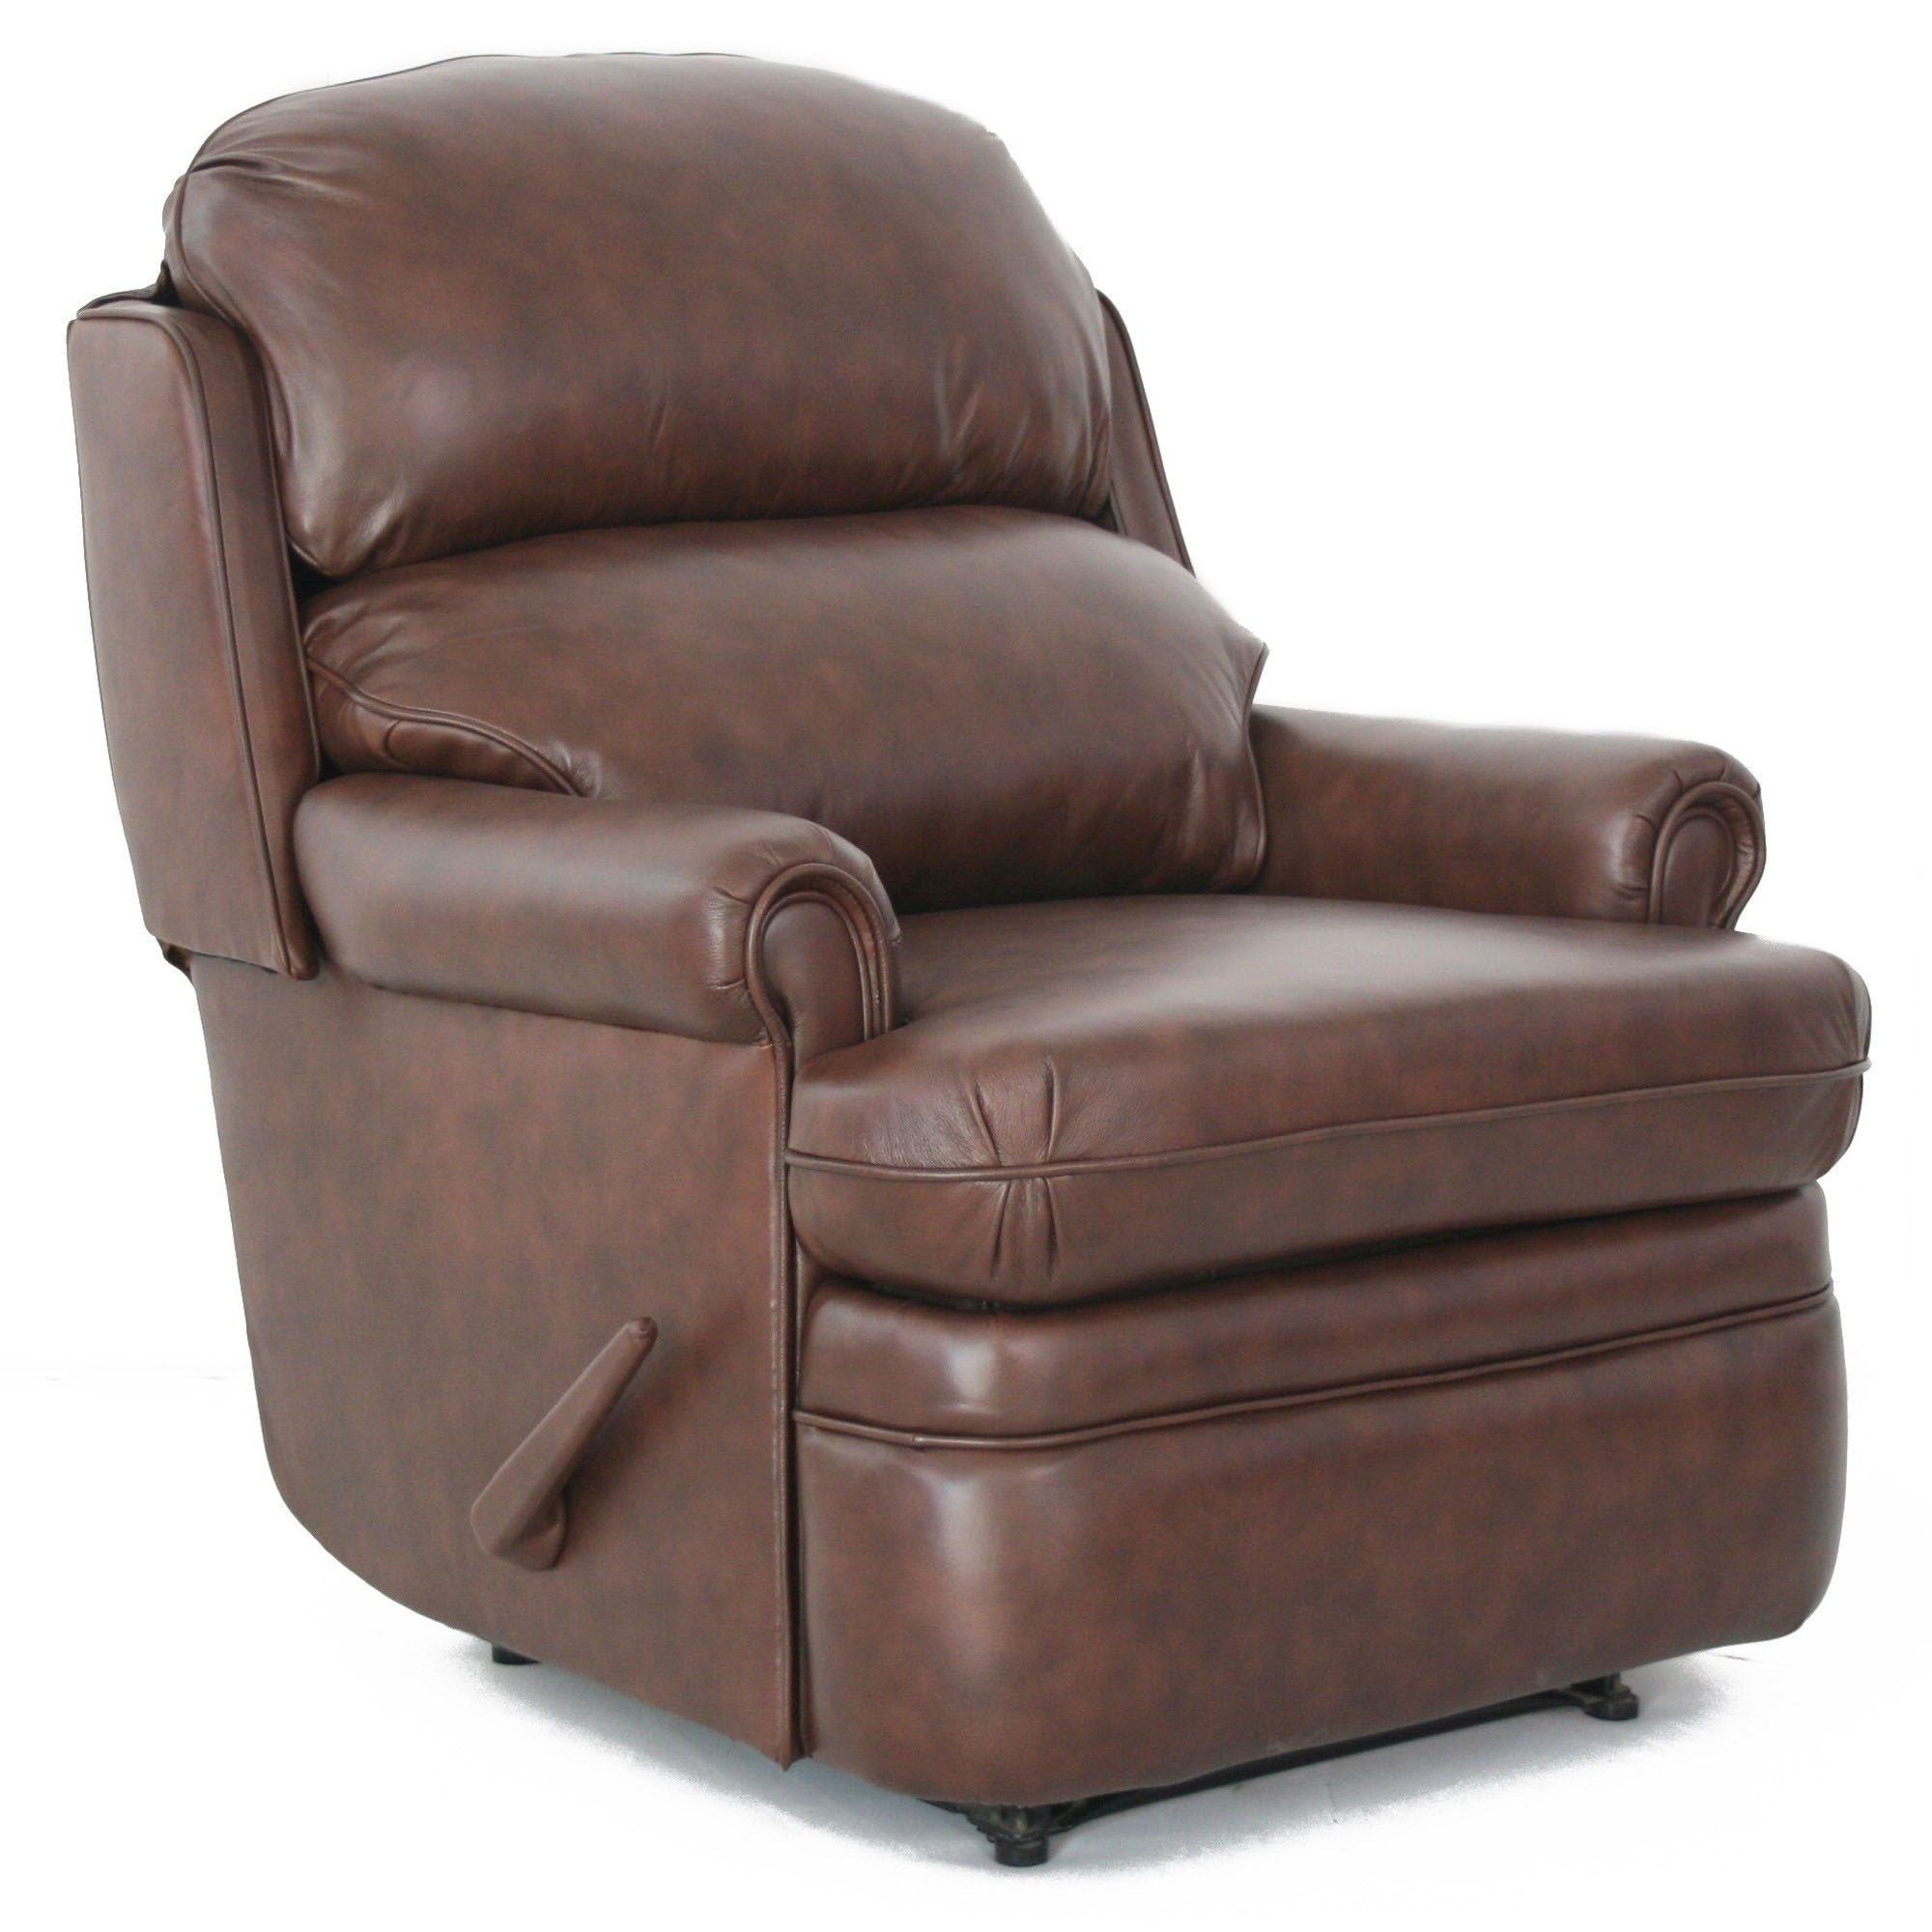 Barcalounger Capital Club Ii Wall Hugger Recliner Chair Leather Recliner Chair Furniture